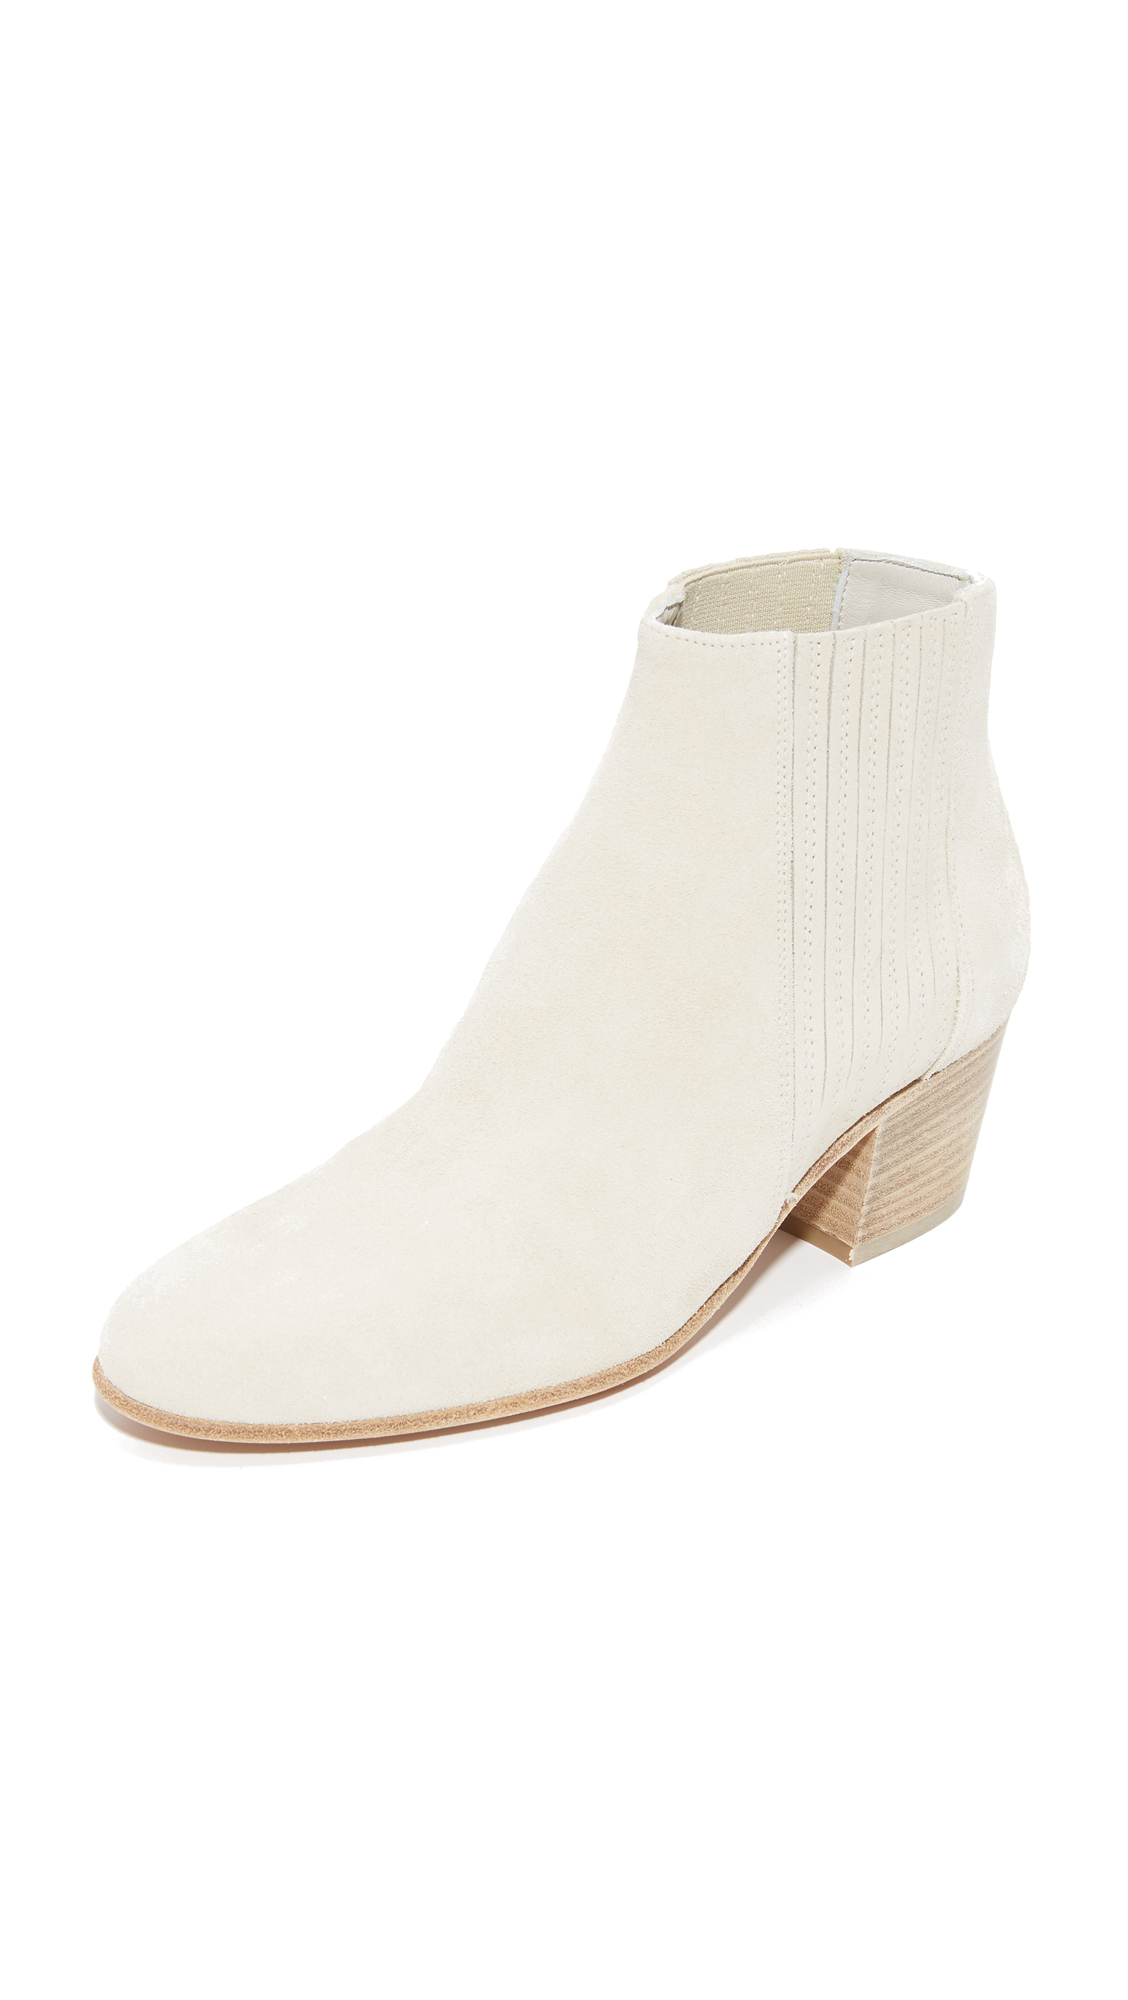 Vince Haider Booties - Grey/White